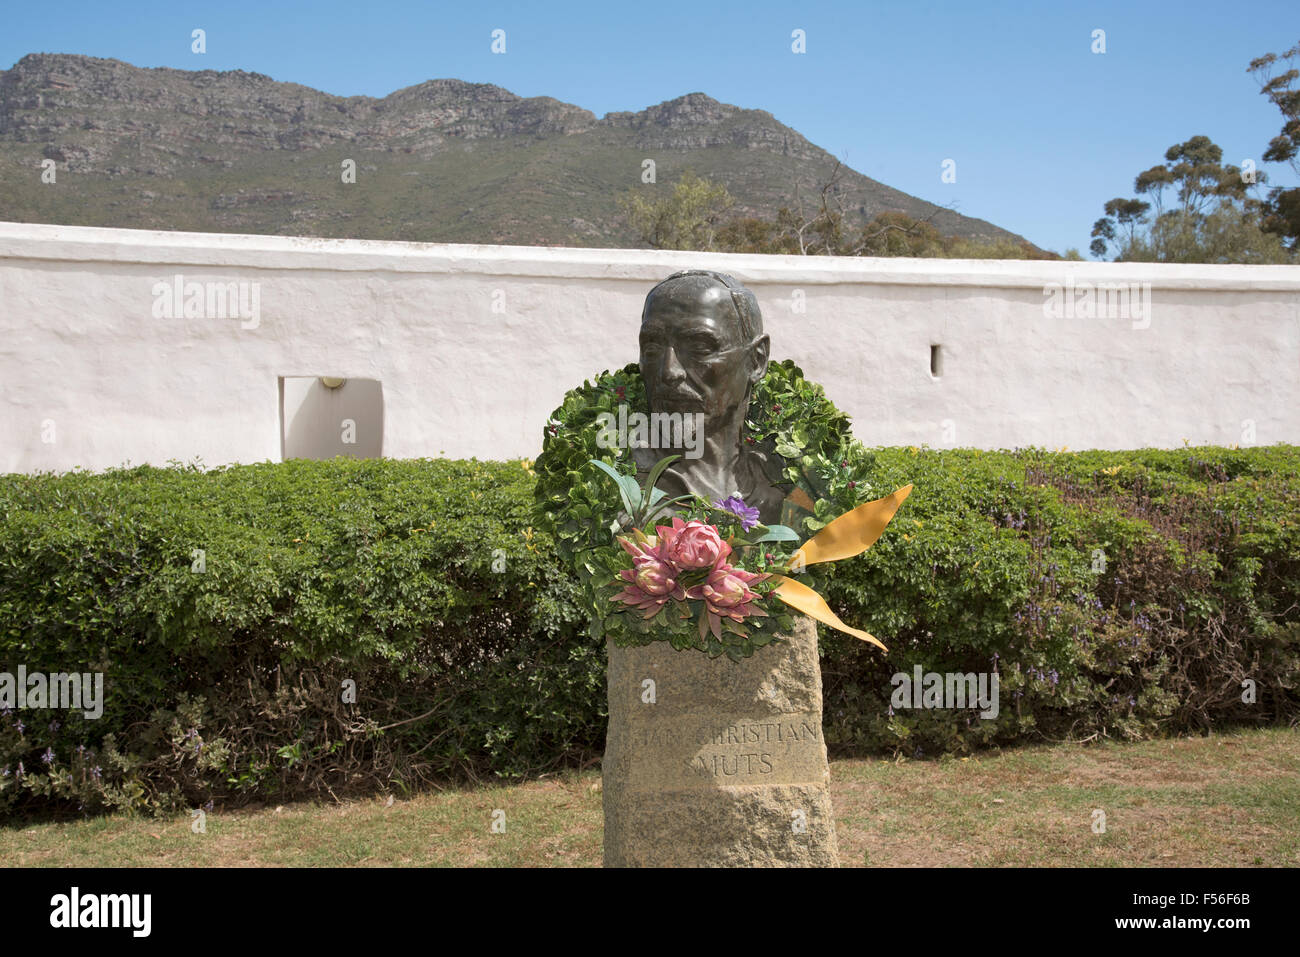 Sculpture of Jan Christian Smuts decorated with a Protea wreath at Smuts Cottage his birthplace in Riebeeck West - Stock Image